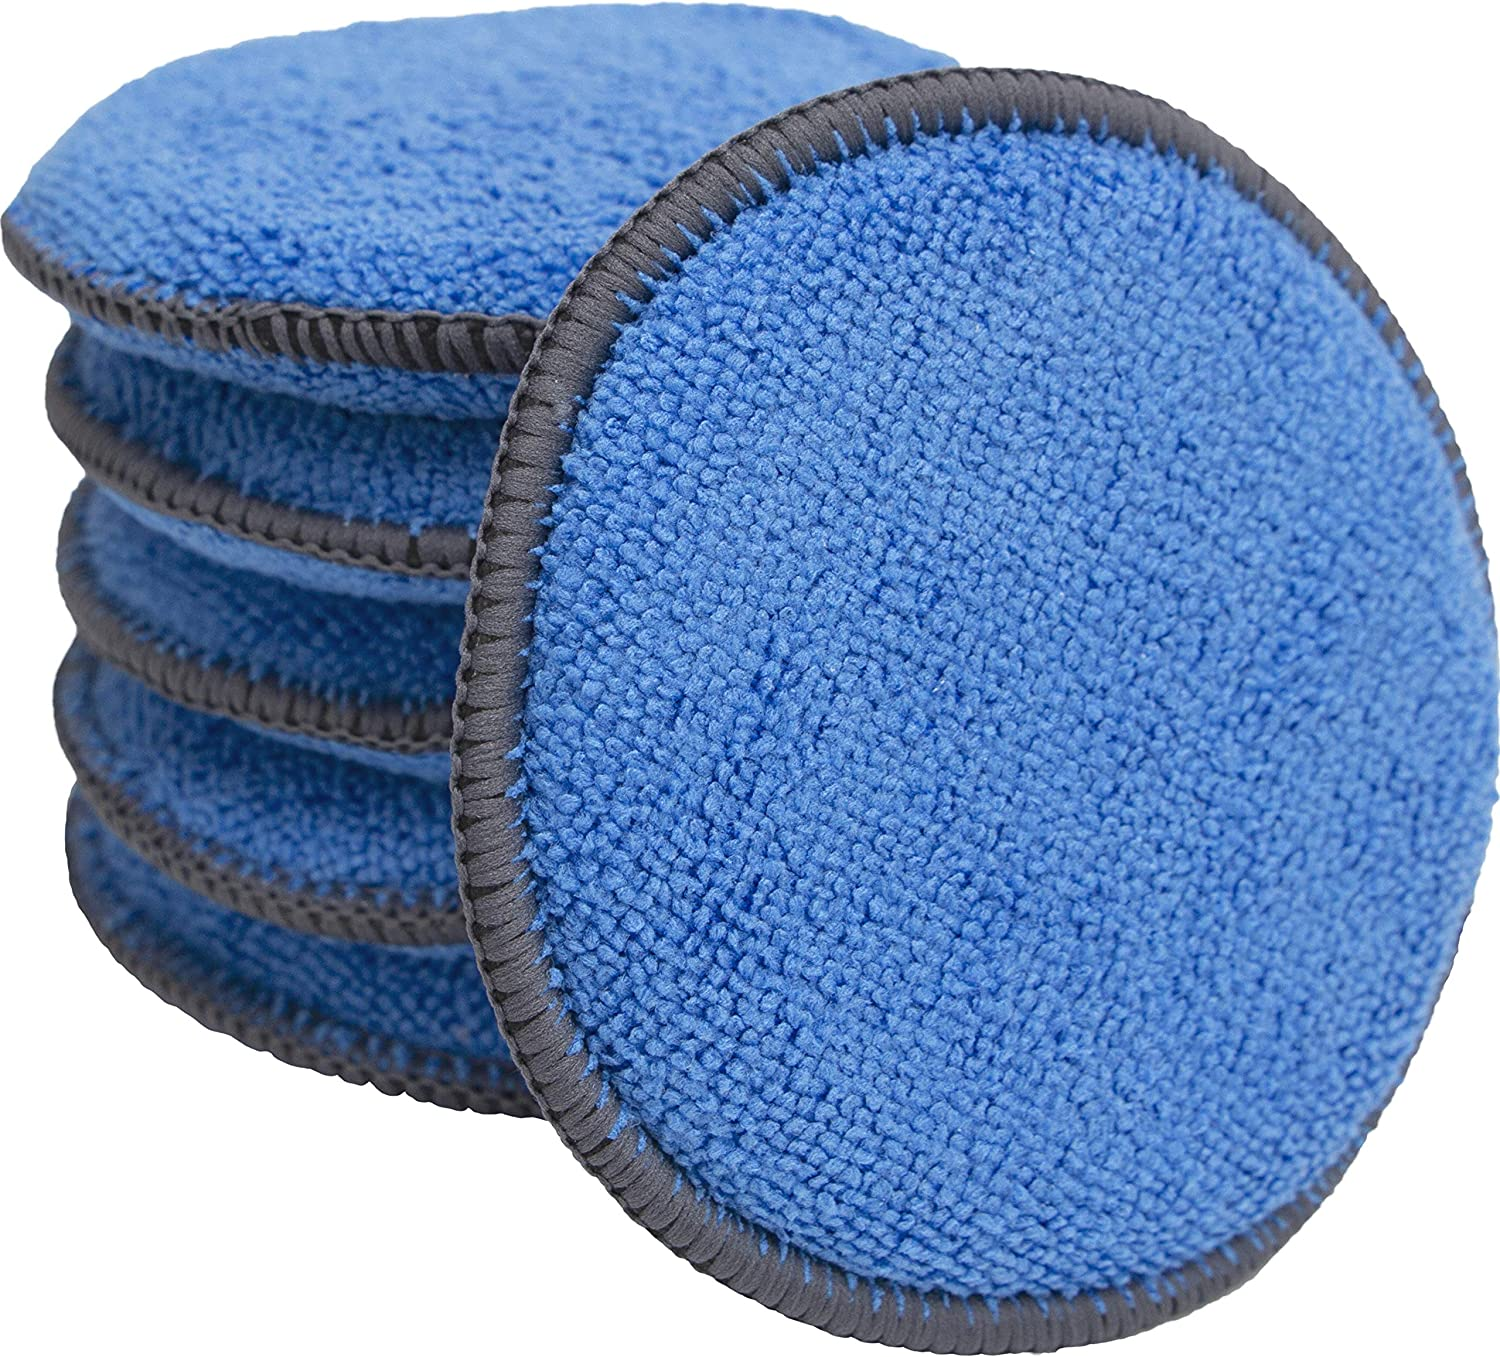 Microfiber Applicator and Cleaning Pads - 5 Inch